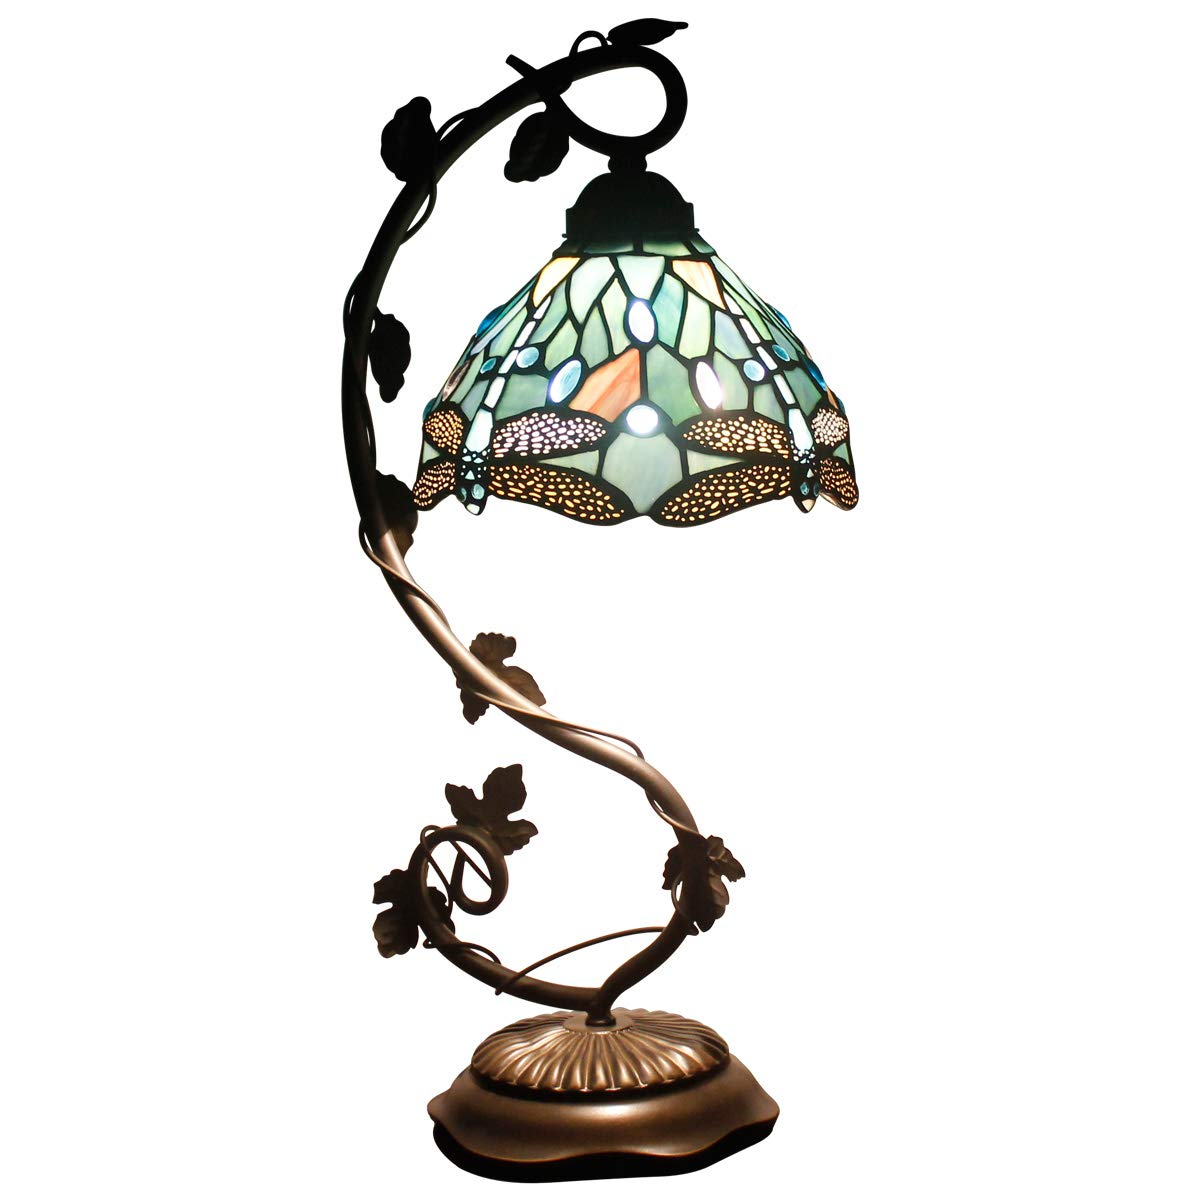 Tiffany Lamps Stained Glass Table Desk Reading Lamp Crystal Bead Sea Blue Dragonfly Style Shade W8H22 Inch for Living Room Bedroom Bookcase Dresser Coffee Table S147 WERFACTORY by WERFACTORY (Image #1)